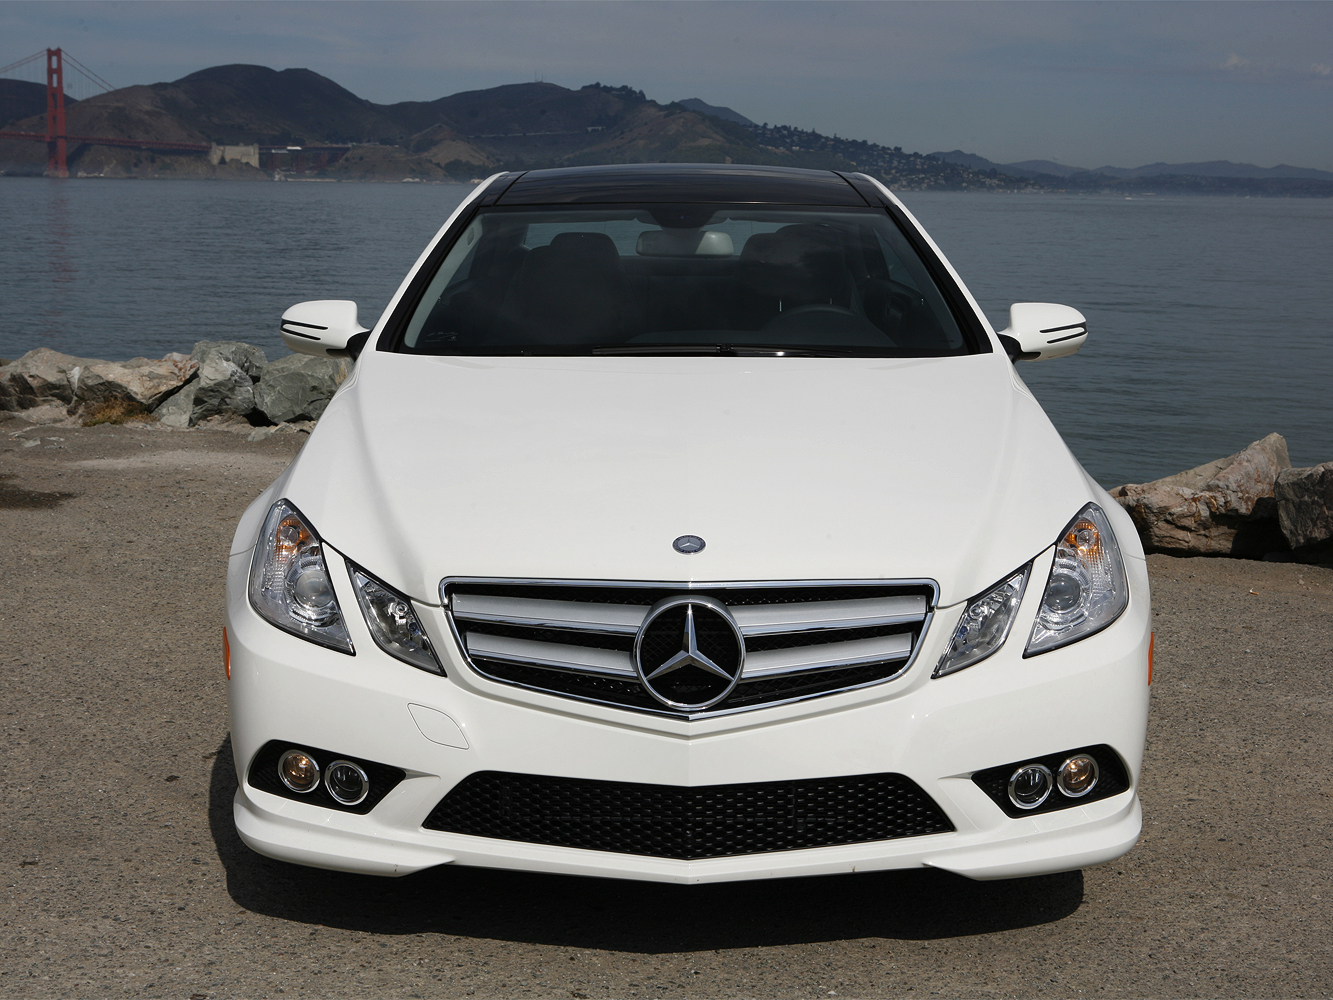 2010 mercedes benz e550 coupe review cnet. Black Bedroom Furniture Sets. Home Design Ideas